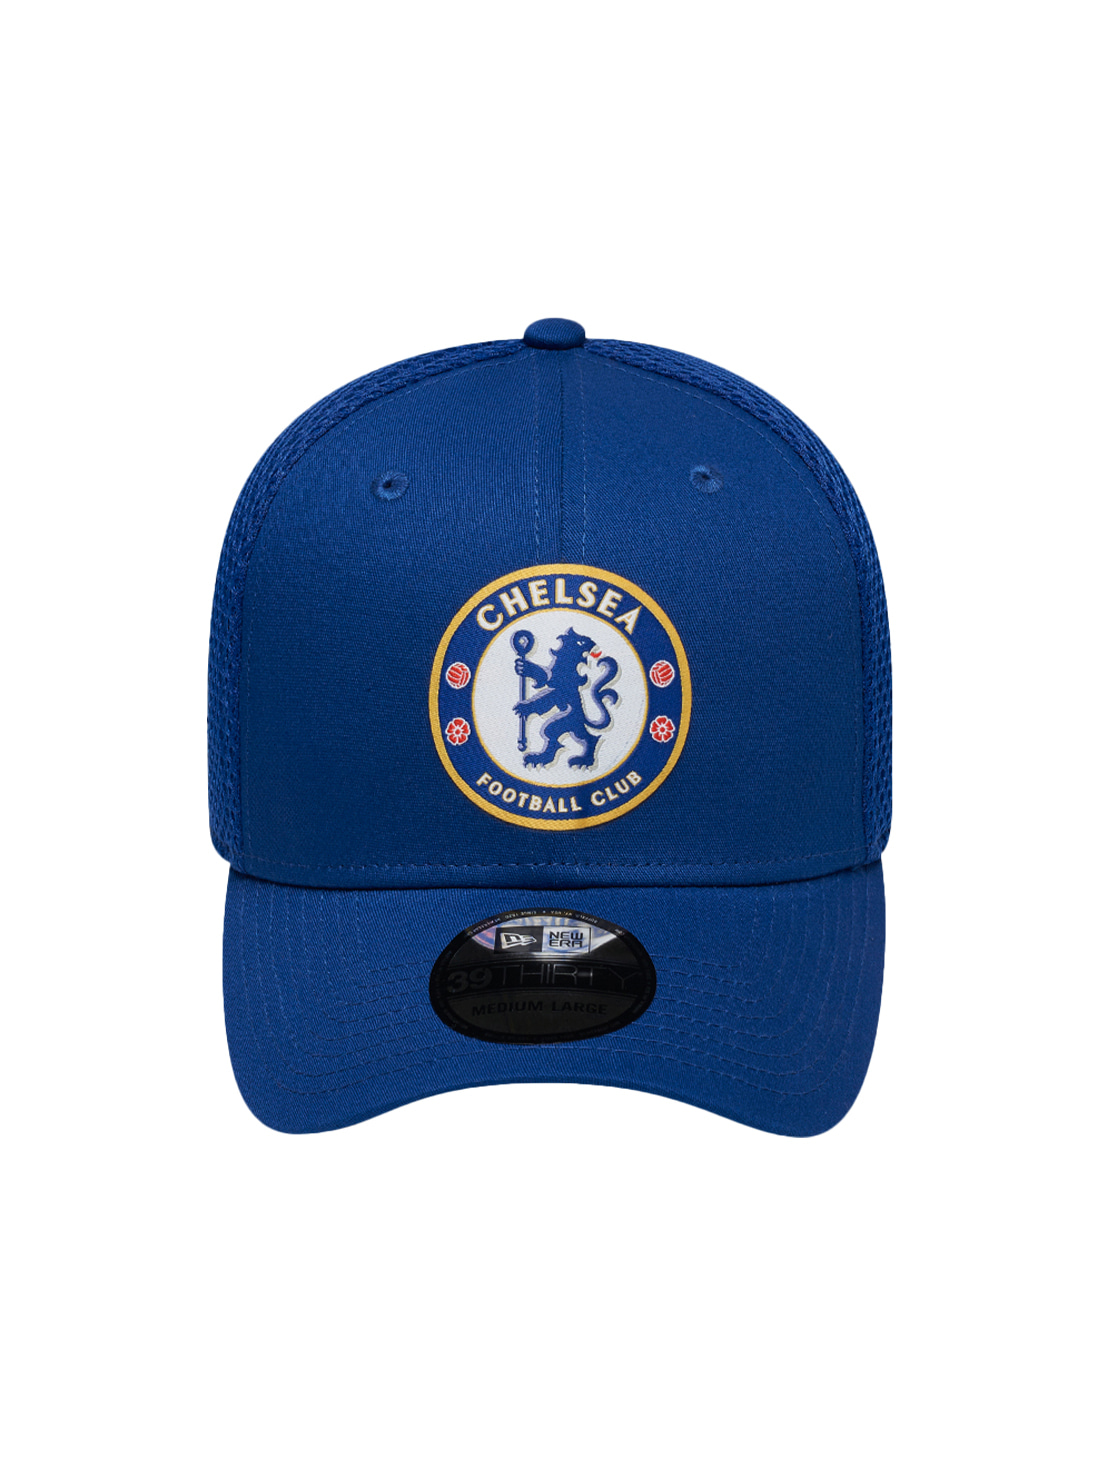 GOALSTUDIO (Sold Out) CHELSEA SPACER MESH 3930 - BLUE